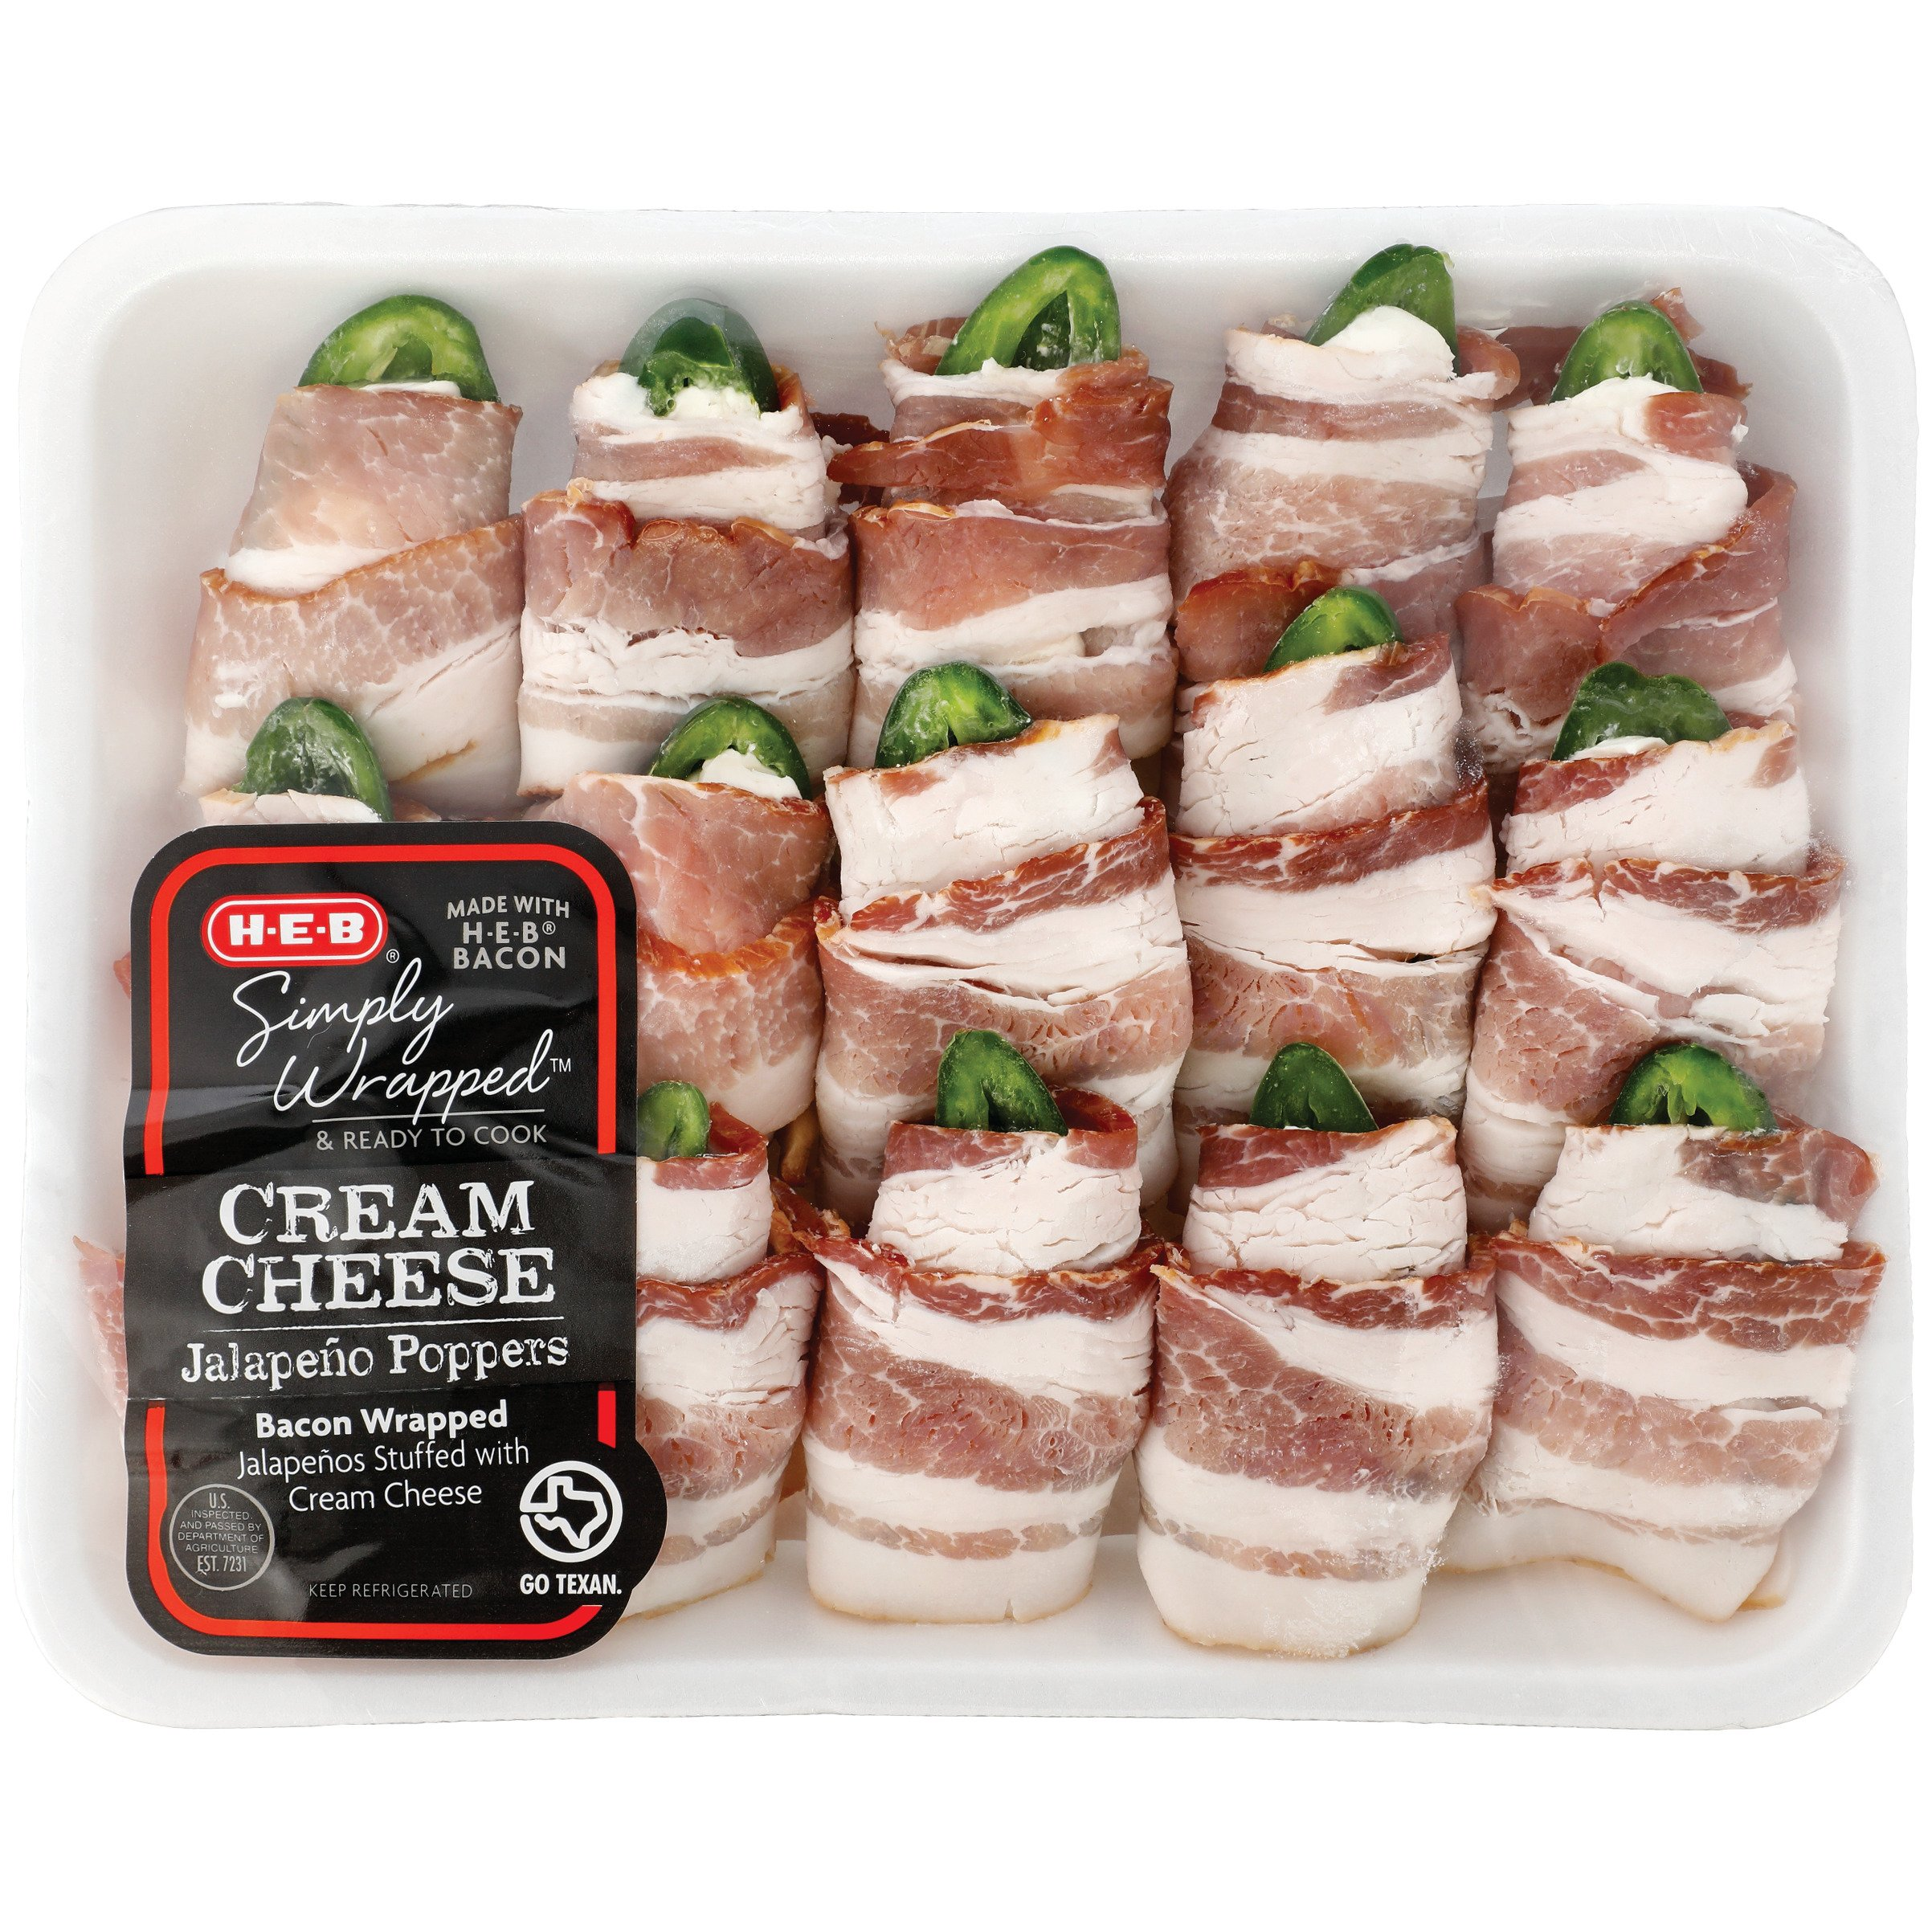 H‑e‑b Simply Wrapped Cream Cheese Jalapeno Poppers €� Value Pack €� Shop  Fajitas And Prepared Meats At Heb